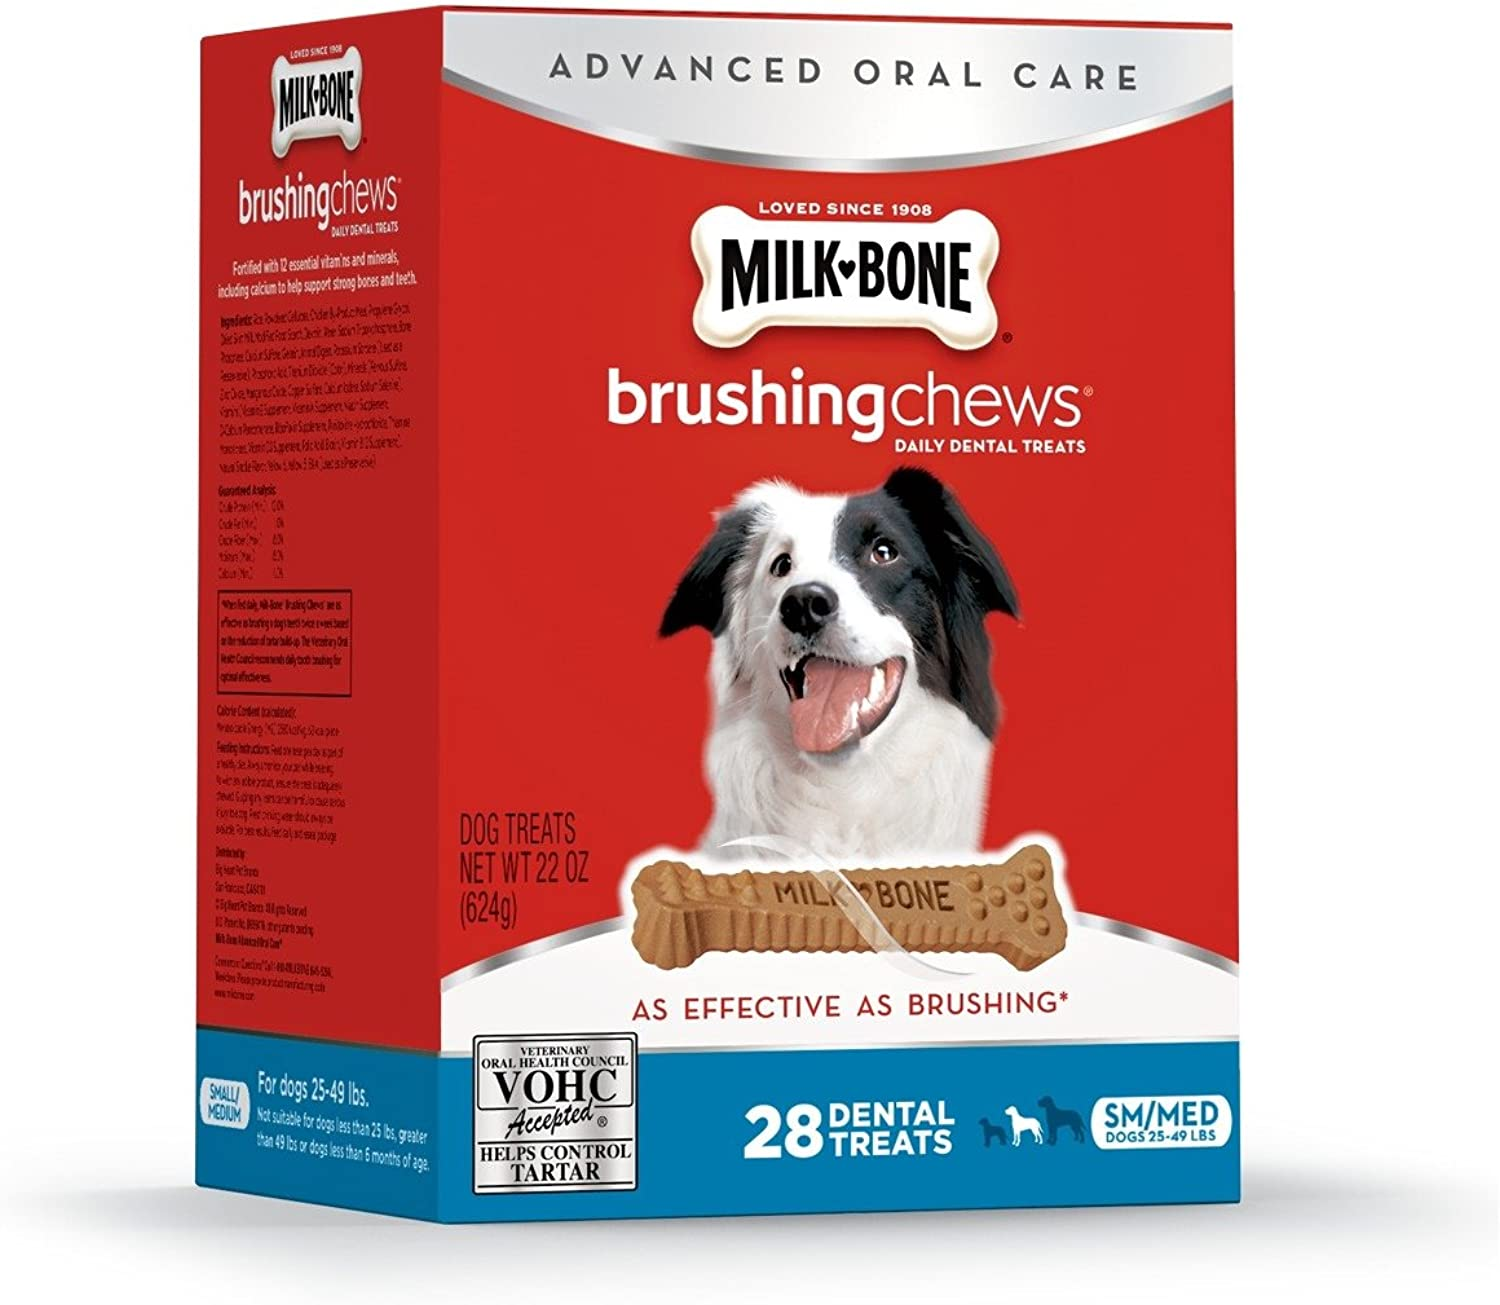 MilkBone Brushing Chews Daily Dental Treats  Small Medium Value Pack, 22 Ounce  28 Bones